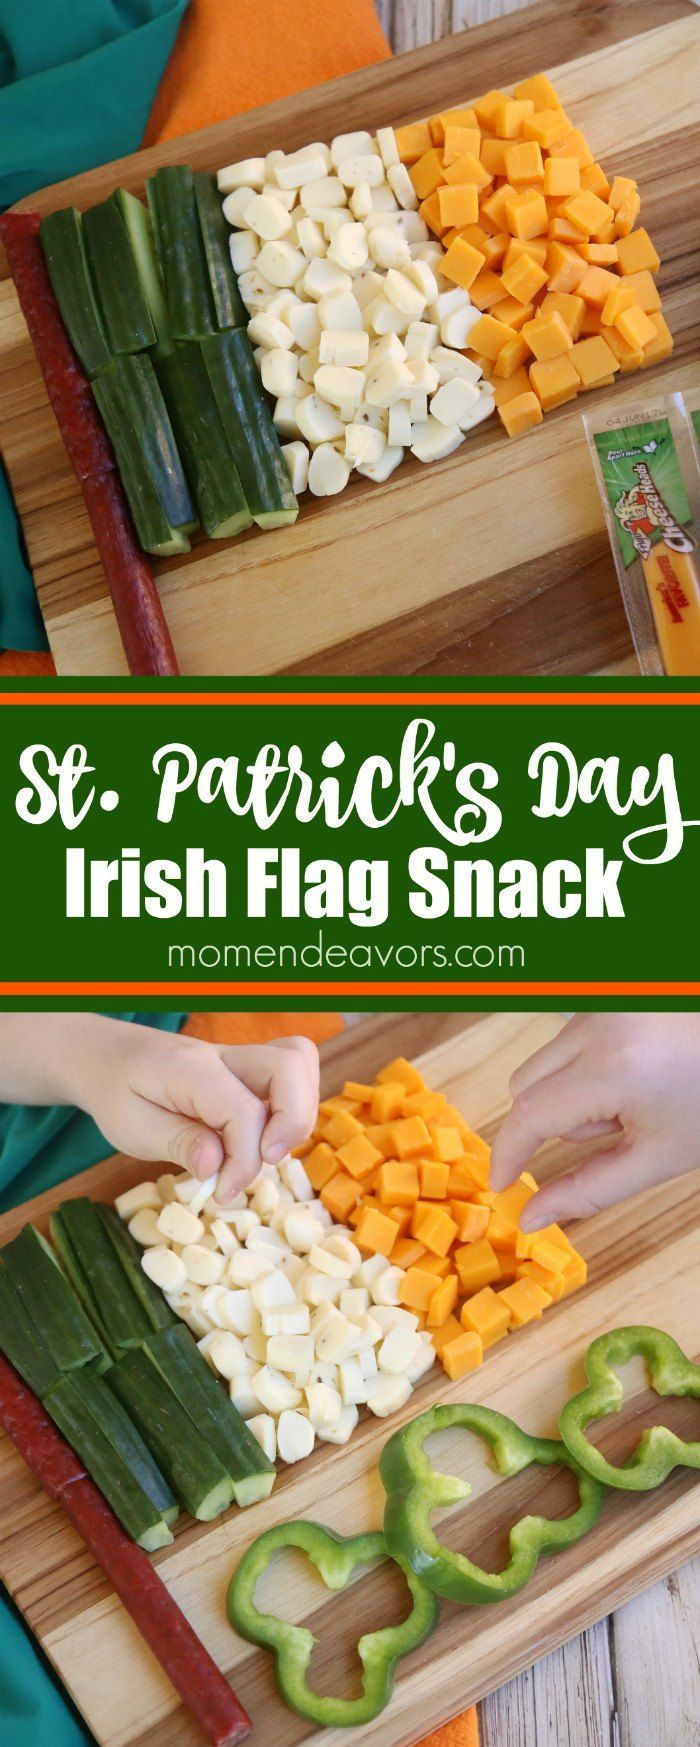 St. Patrick's Day Irish Flag Snack Idea. Sponsored by Frigo.